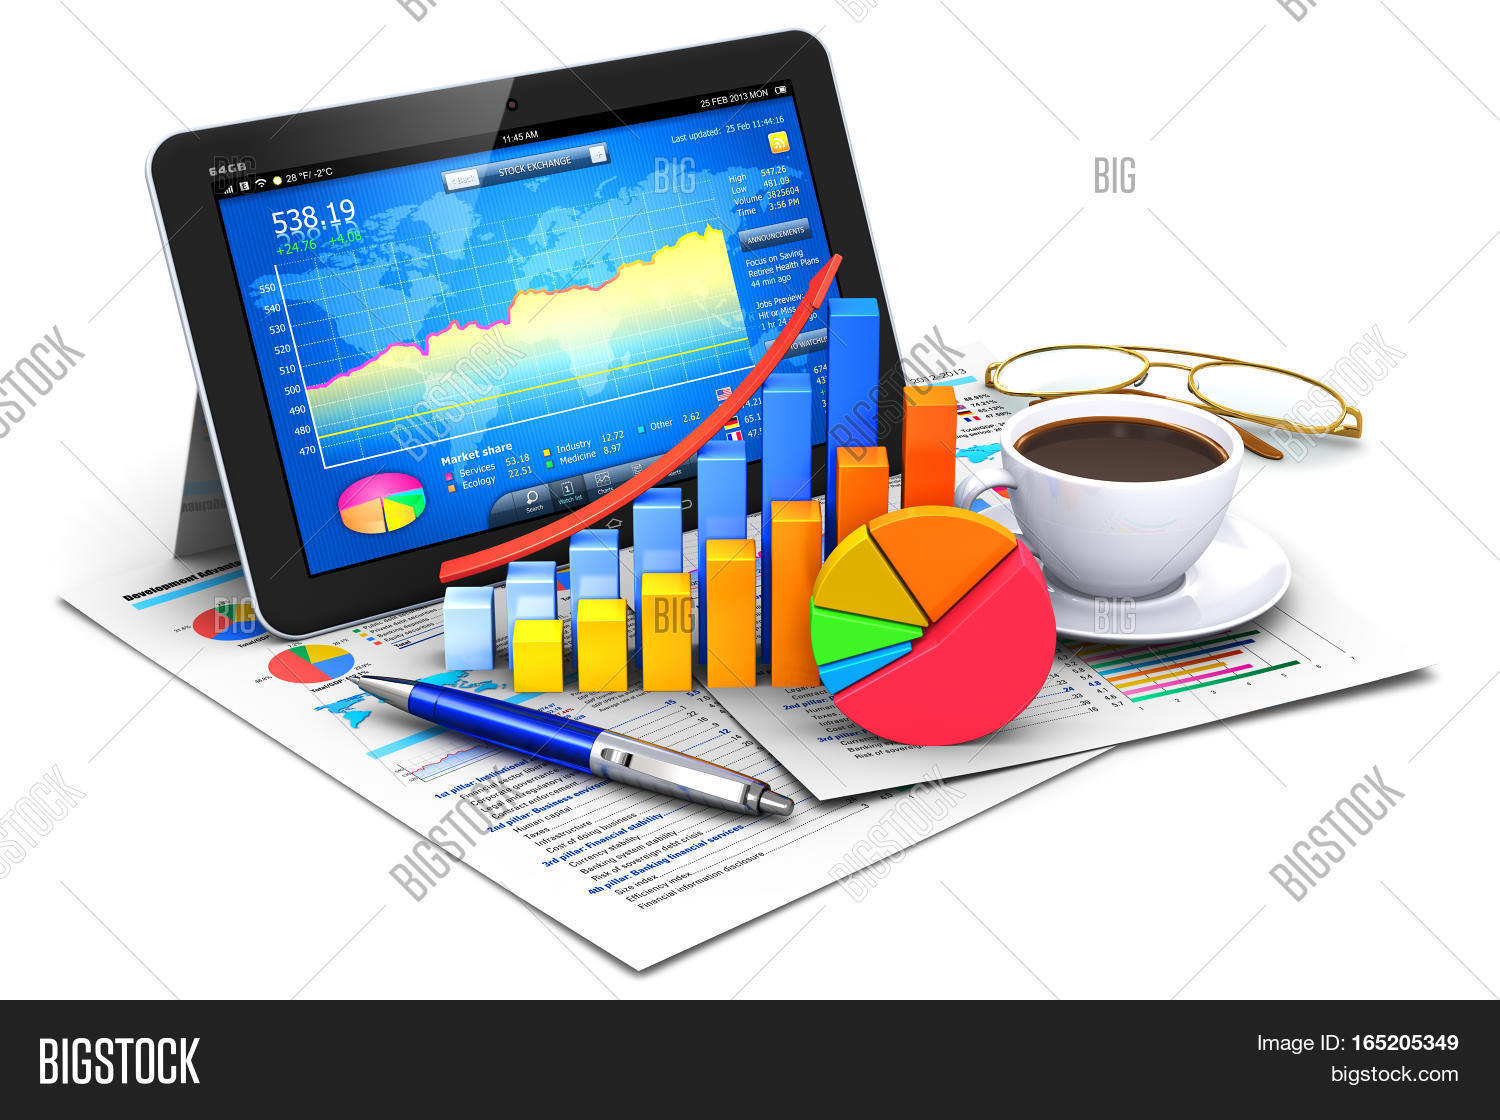 3d render illustration image photo free trial bigstock 3d render illustration of modern tablet computer pc with stock market application software growth bar ccuart Image collections